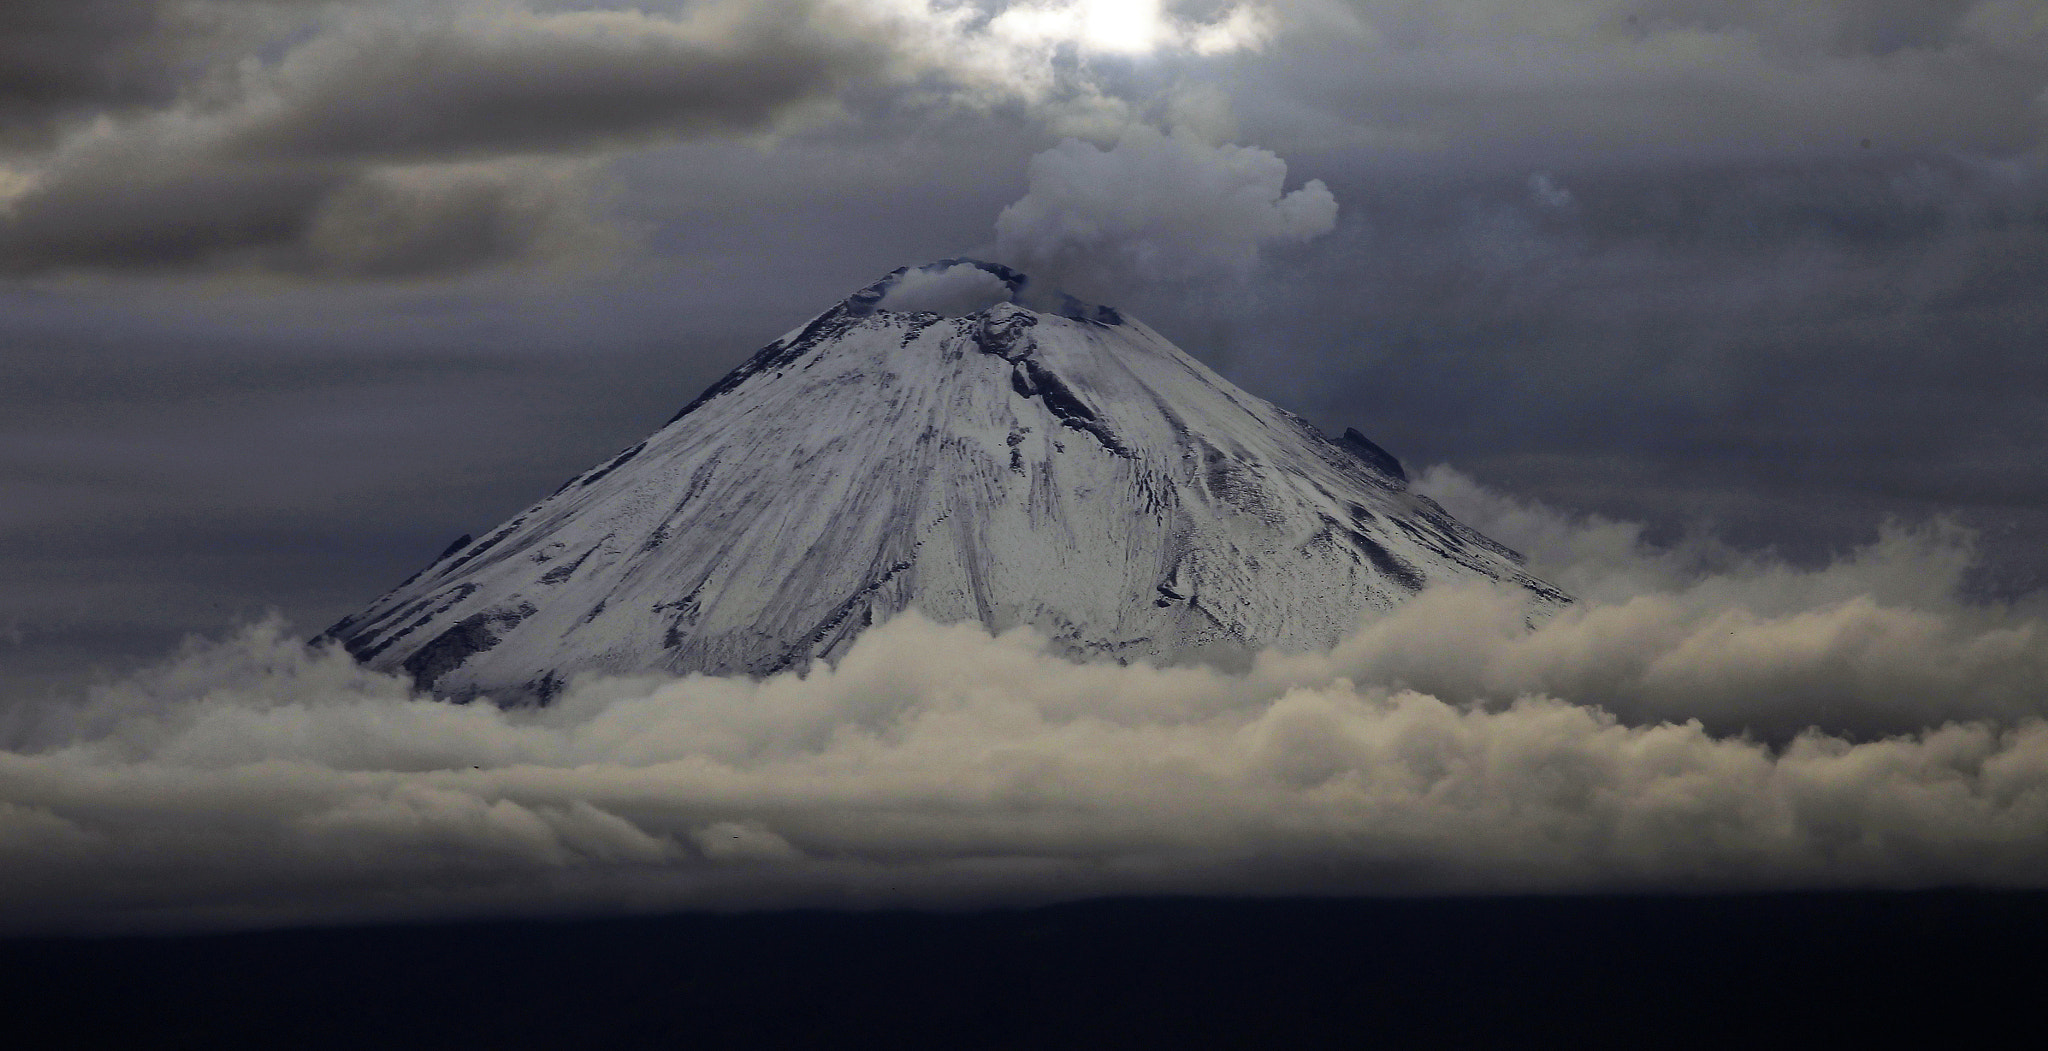 Photograph snow, clouds and volcano by Cristobal Garciaferro Rubio on 500px